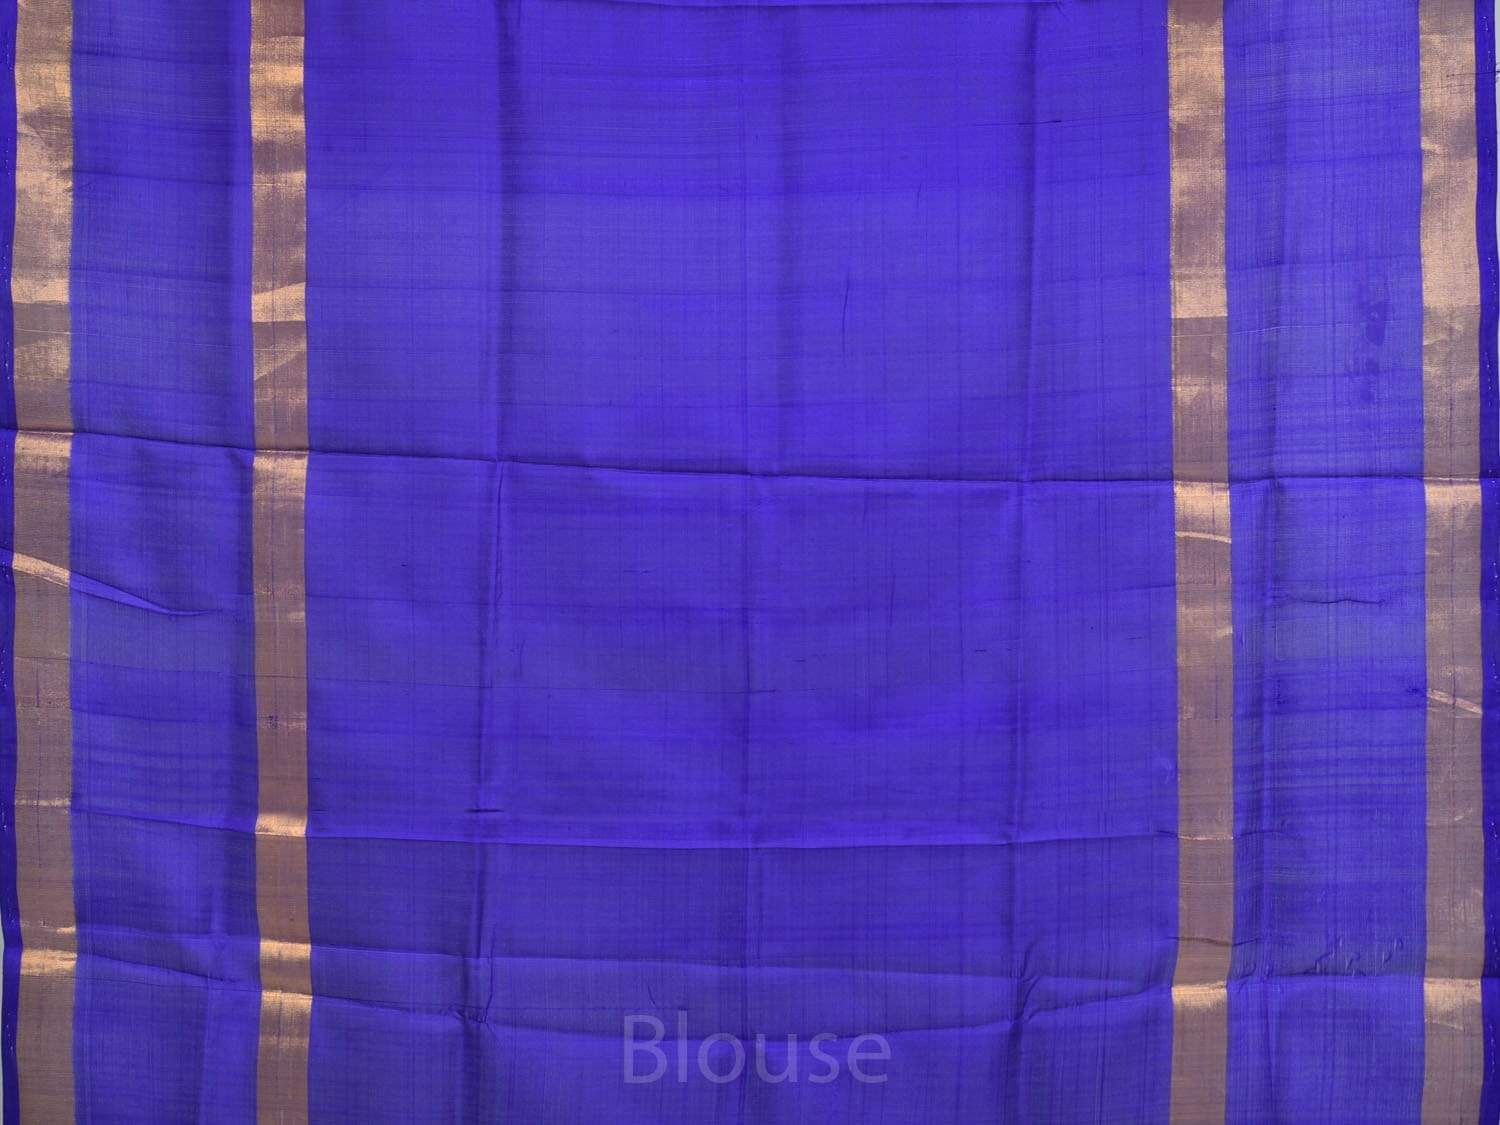 Yellow and Blue Uppada Silk Handloom Saree with Small Checks Design u1575